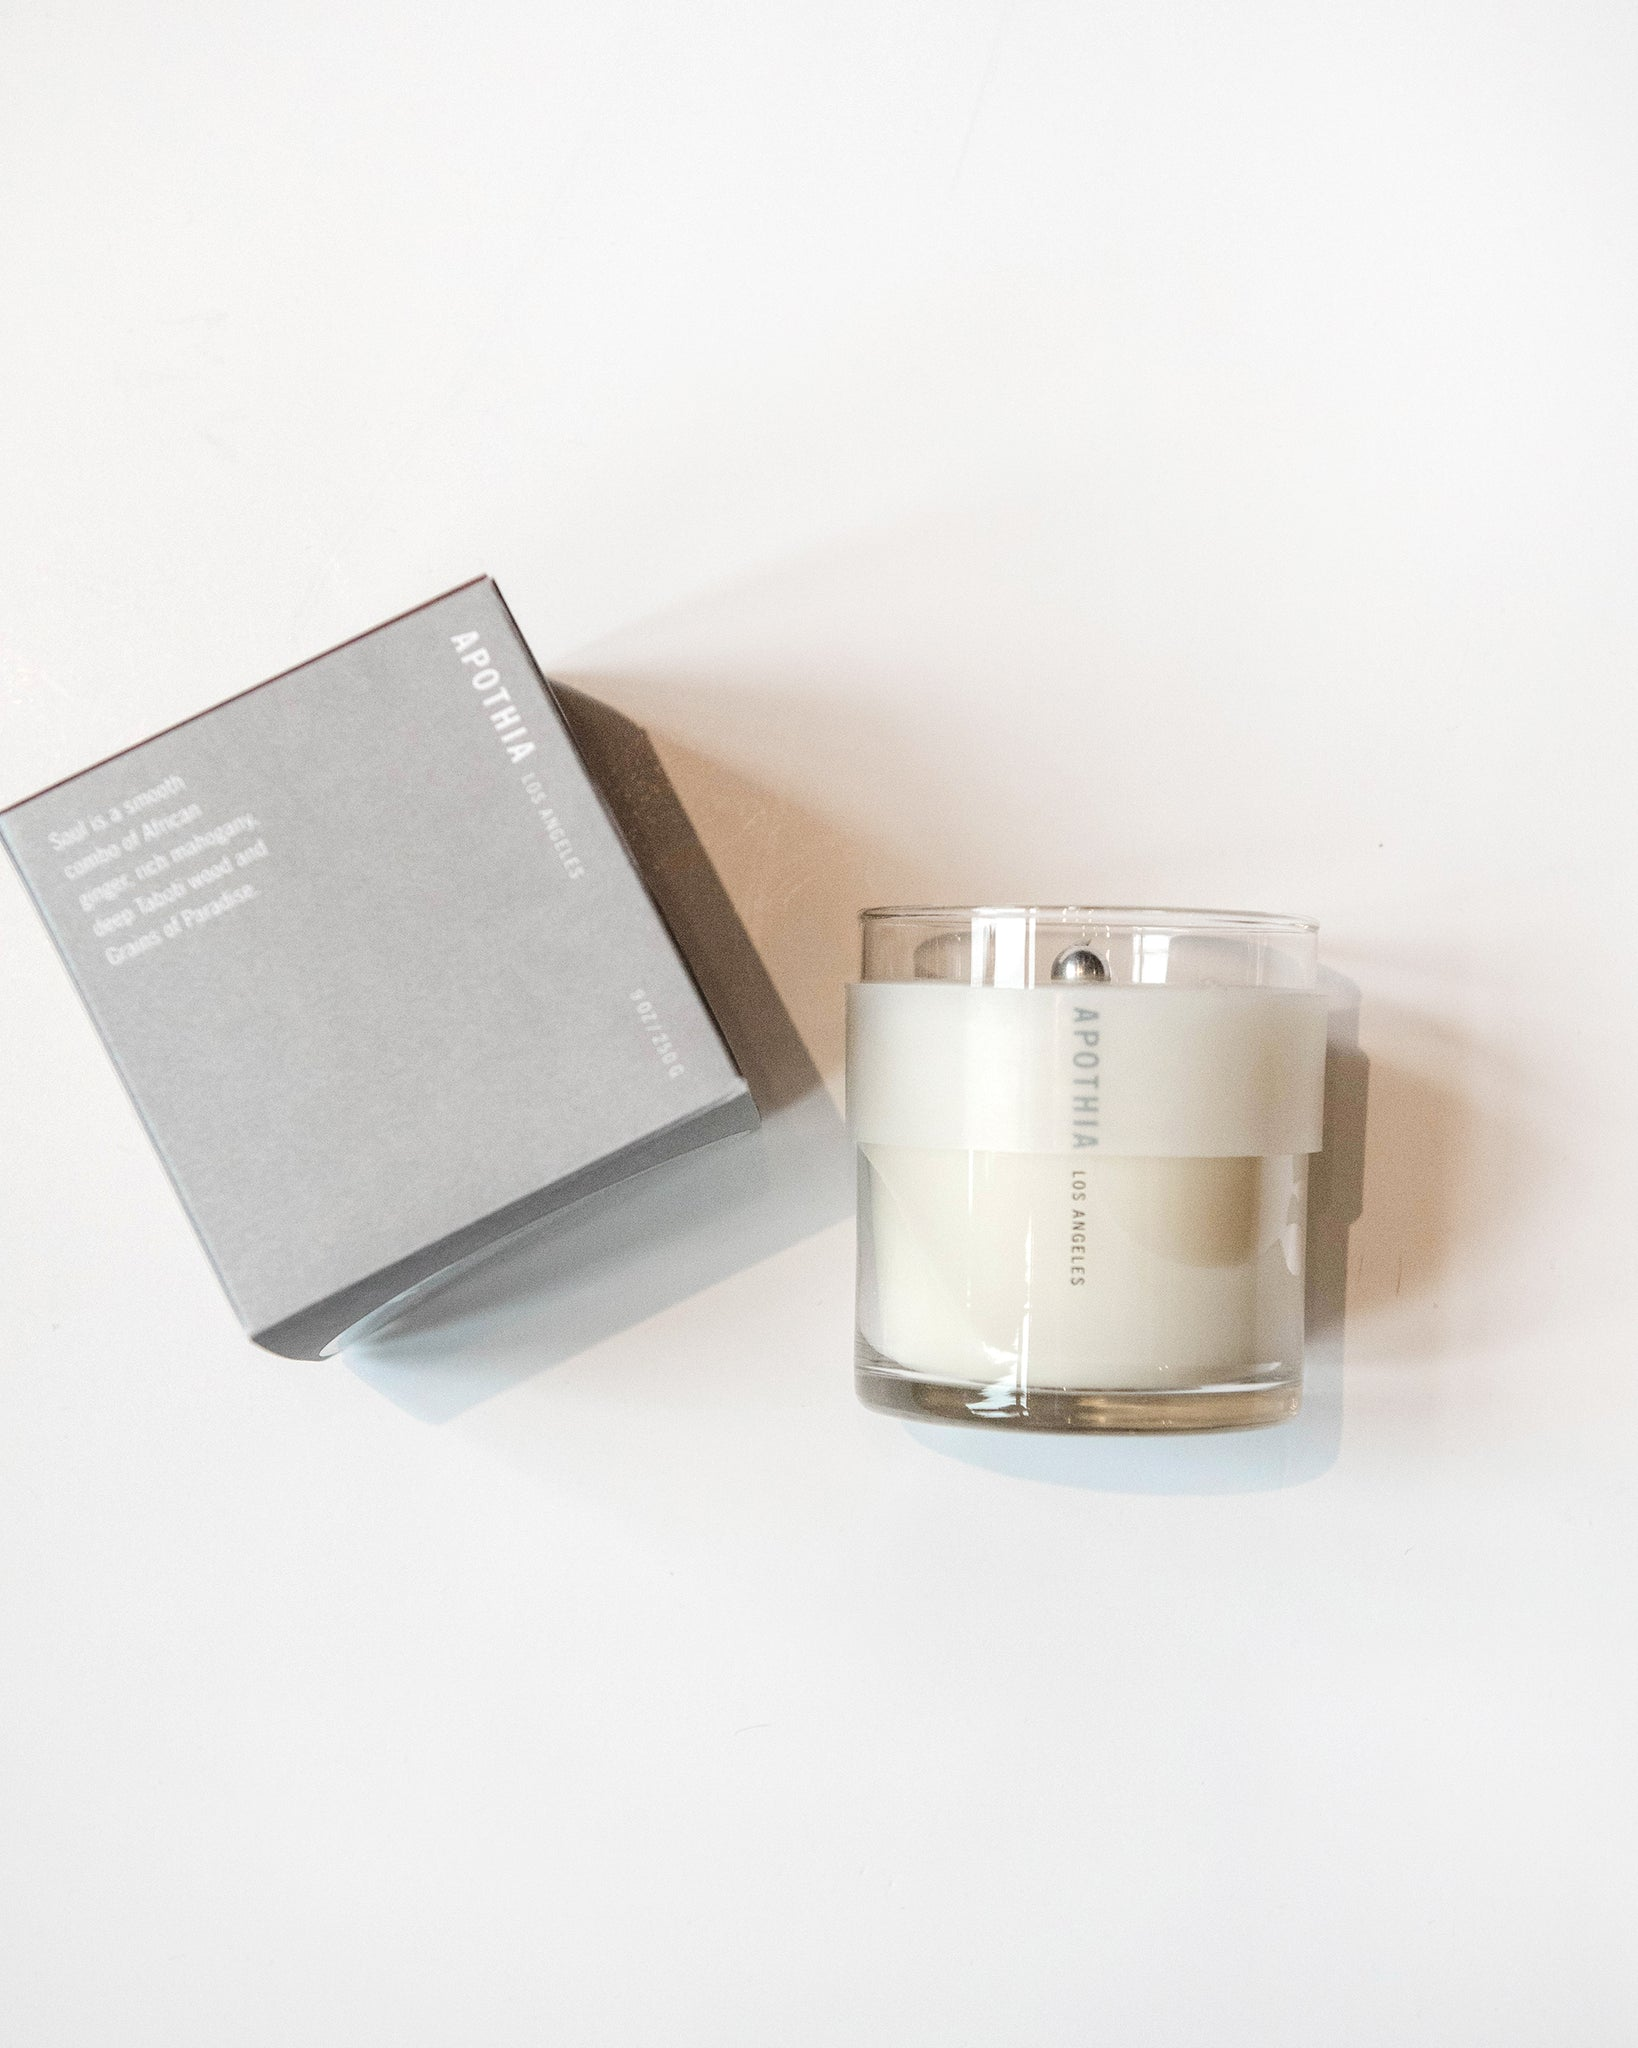 APOTHIA white candle in a 9oz jar combines notes of African ginger, mahogany, taboti wood